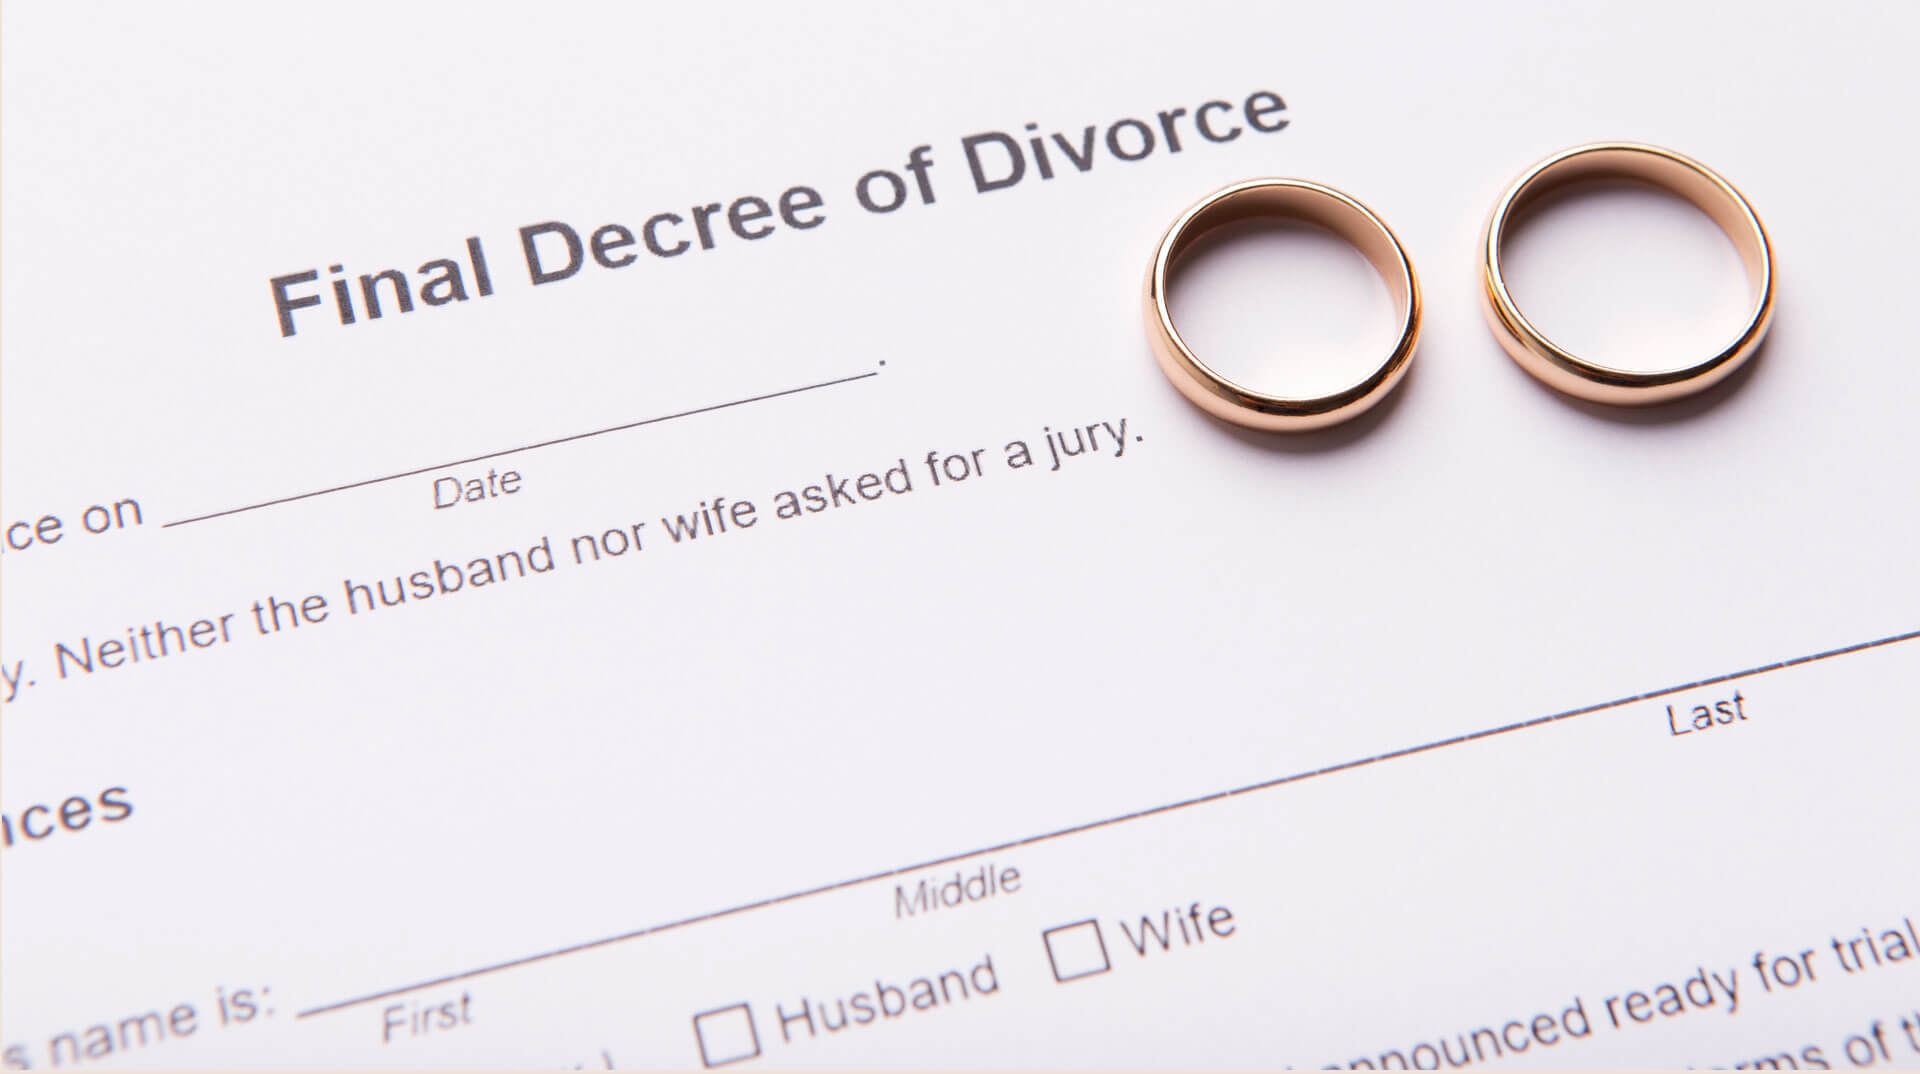 legal document about health insurance after divorce